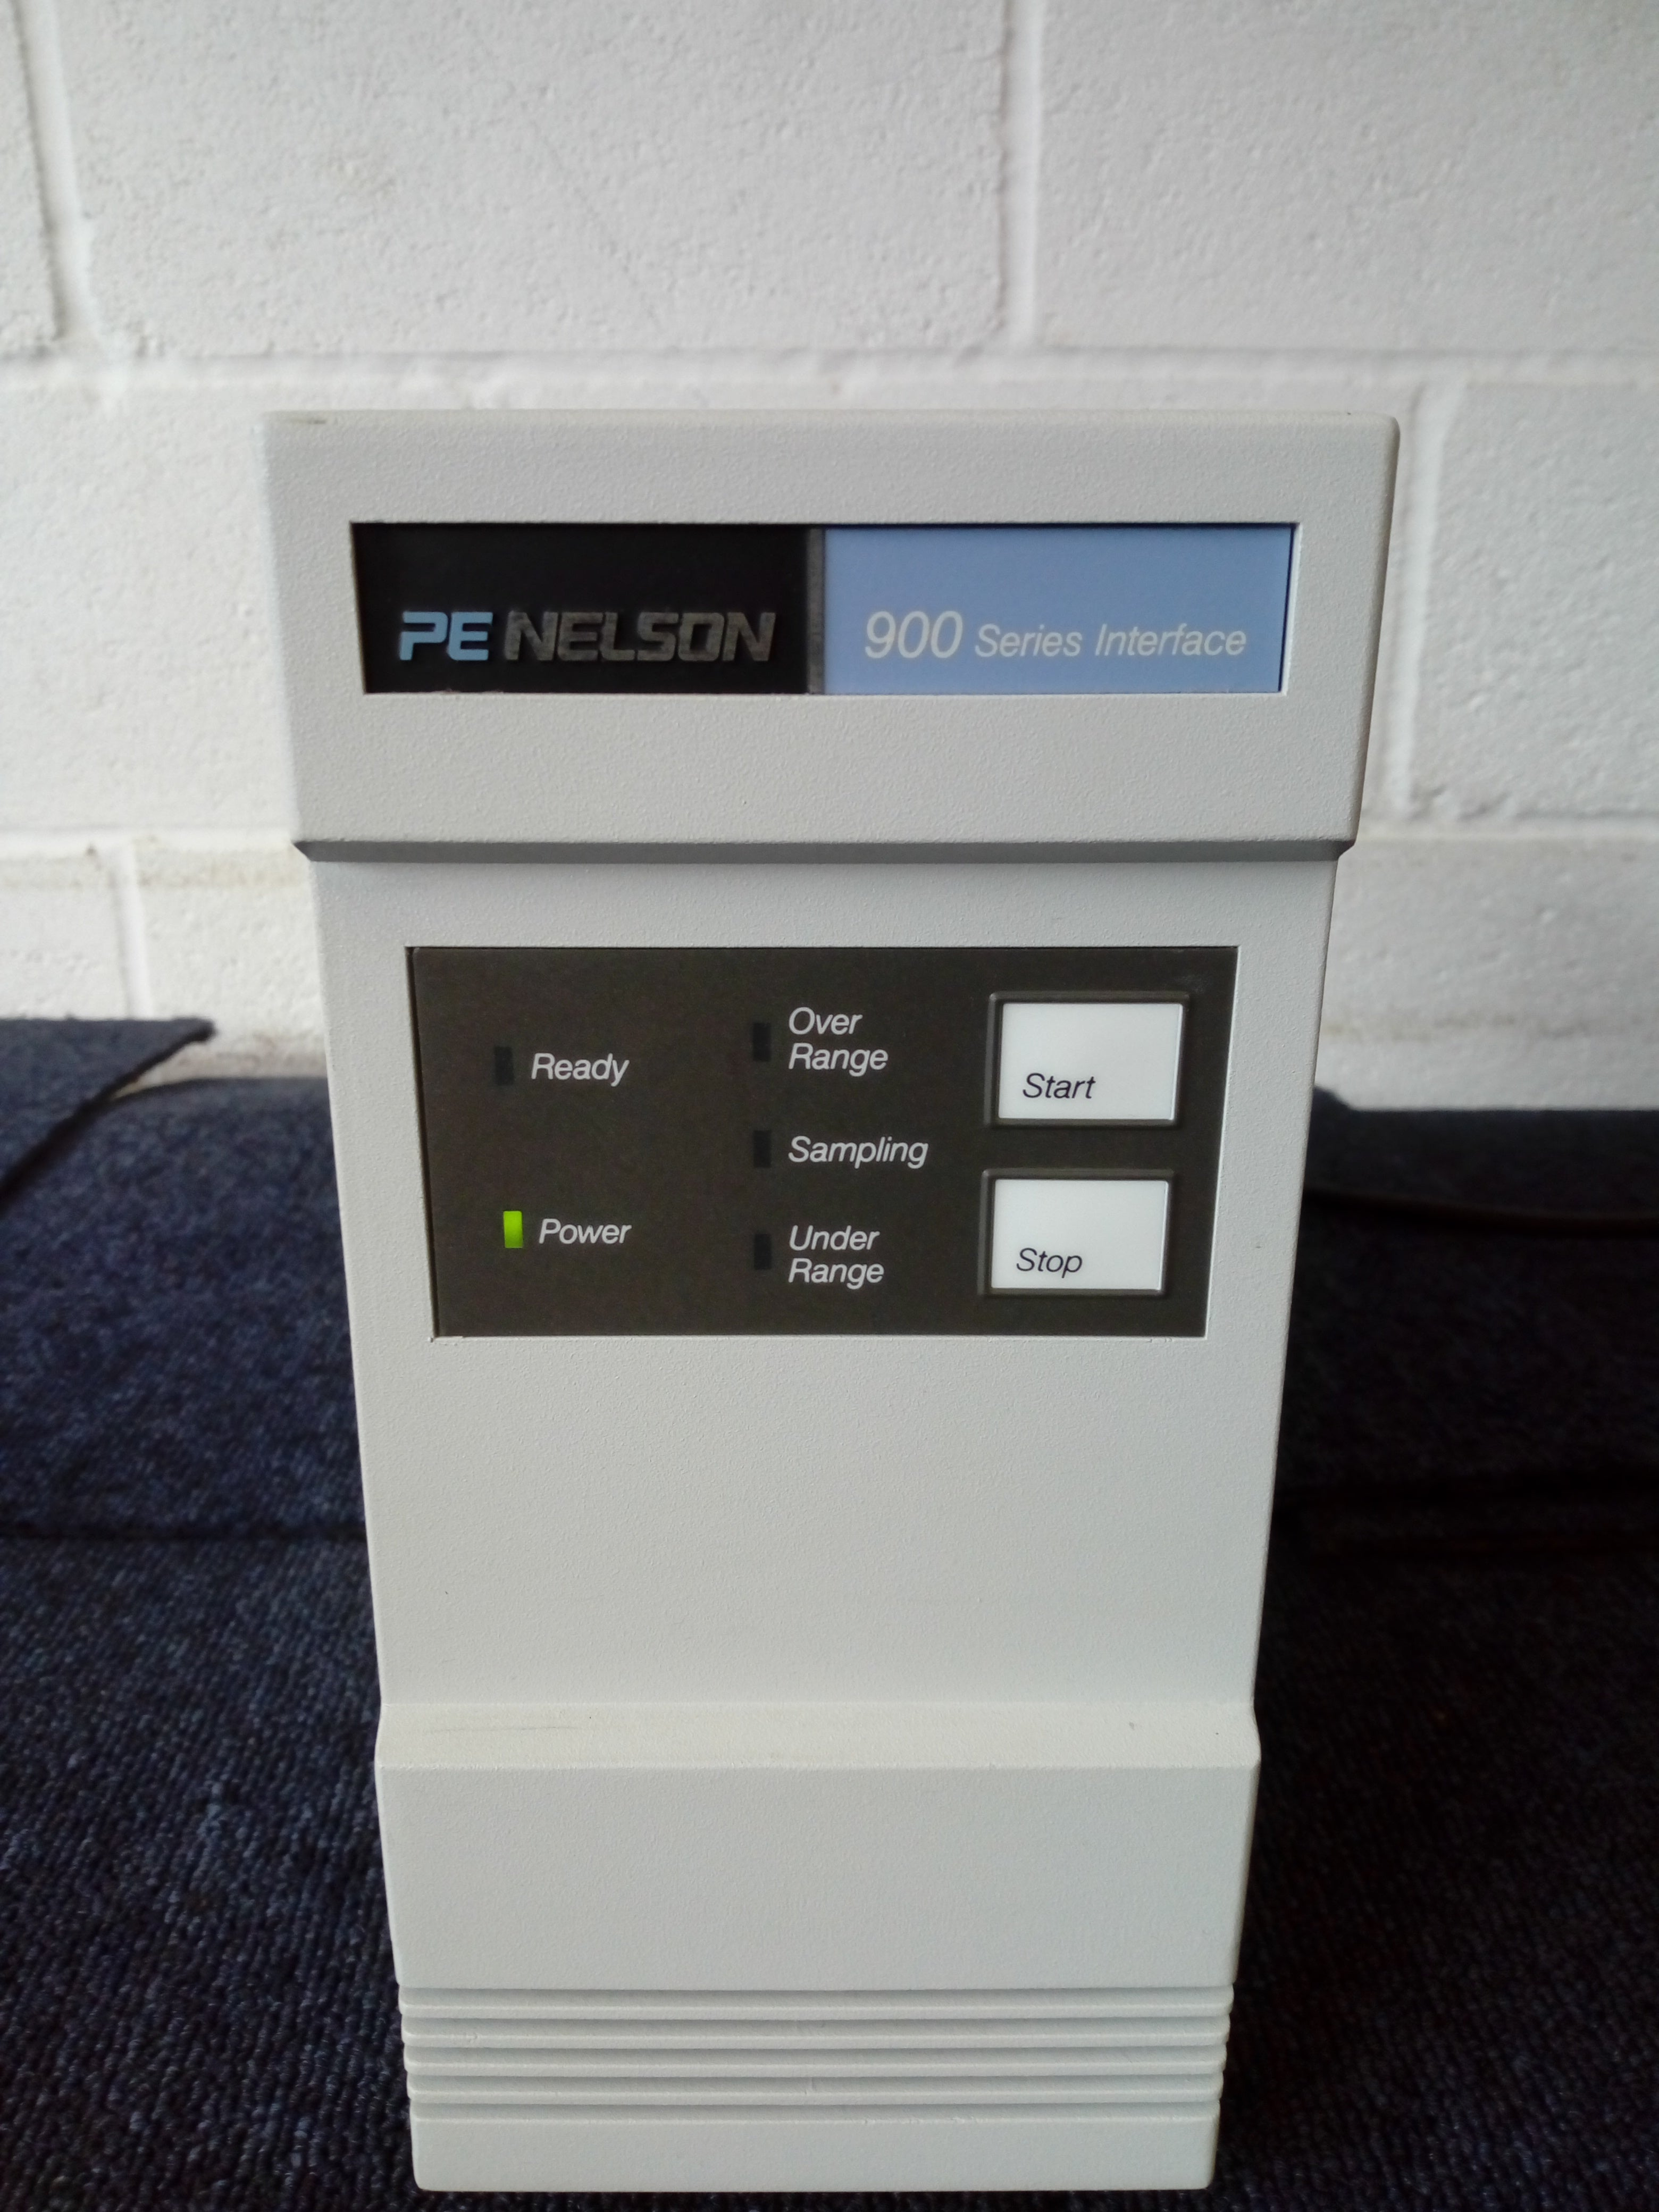 PE Nelson 900 Series Interface (950A)